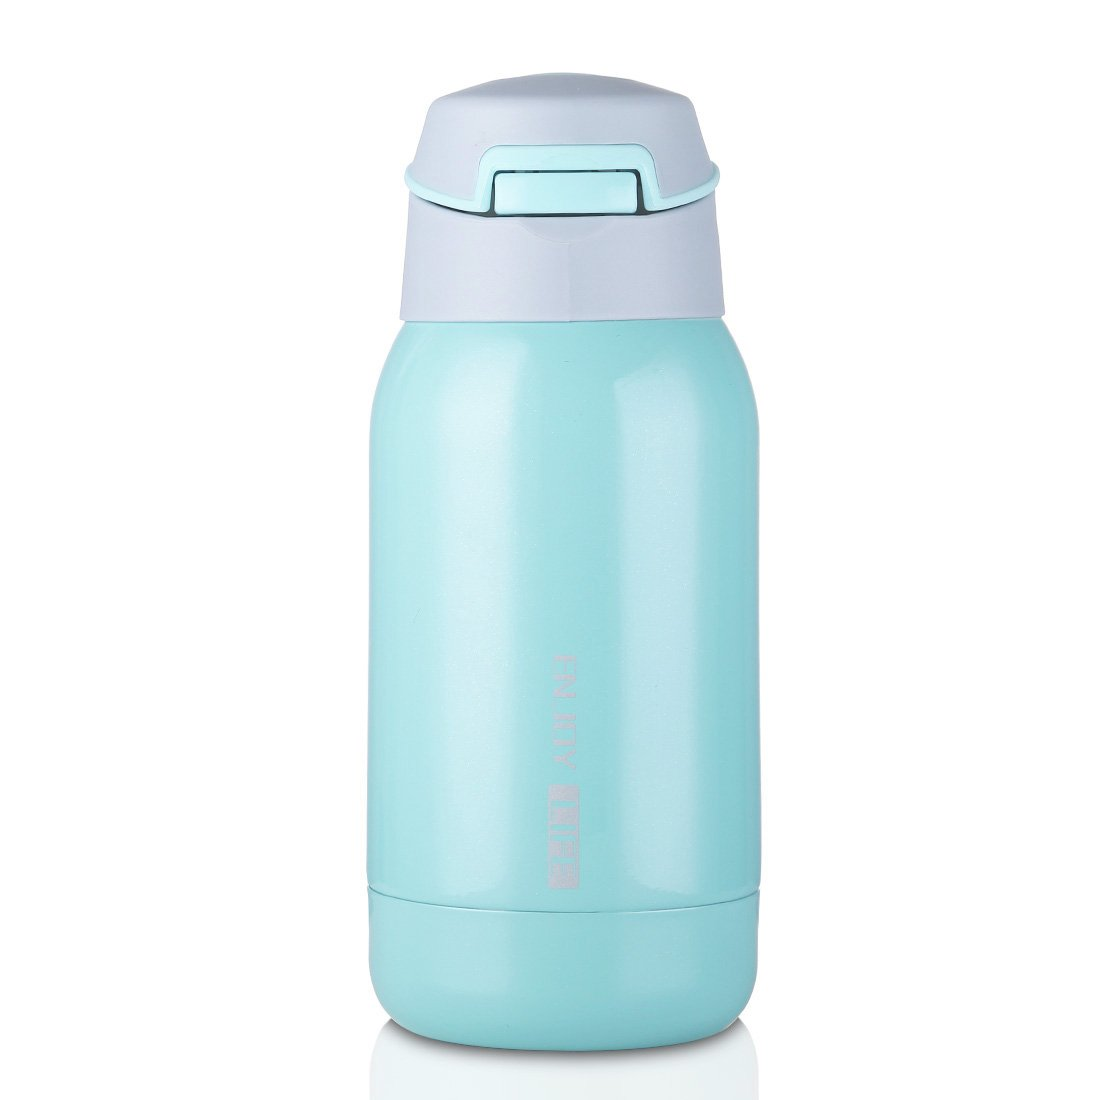 Perfect for Kids//Children JIAQI Stainless Steel Water Bottle with Straw and Strap Double Walled Vacuum Insulated Bottle Leak-Proof Travel Coffee Mug One-Handed Open and Drink Pink 260ml//8.8oz